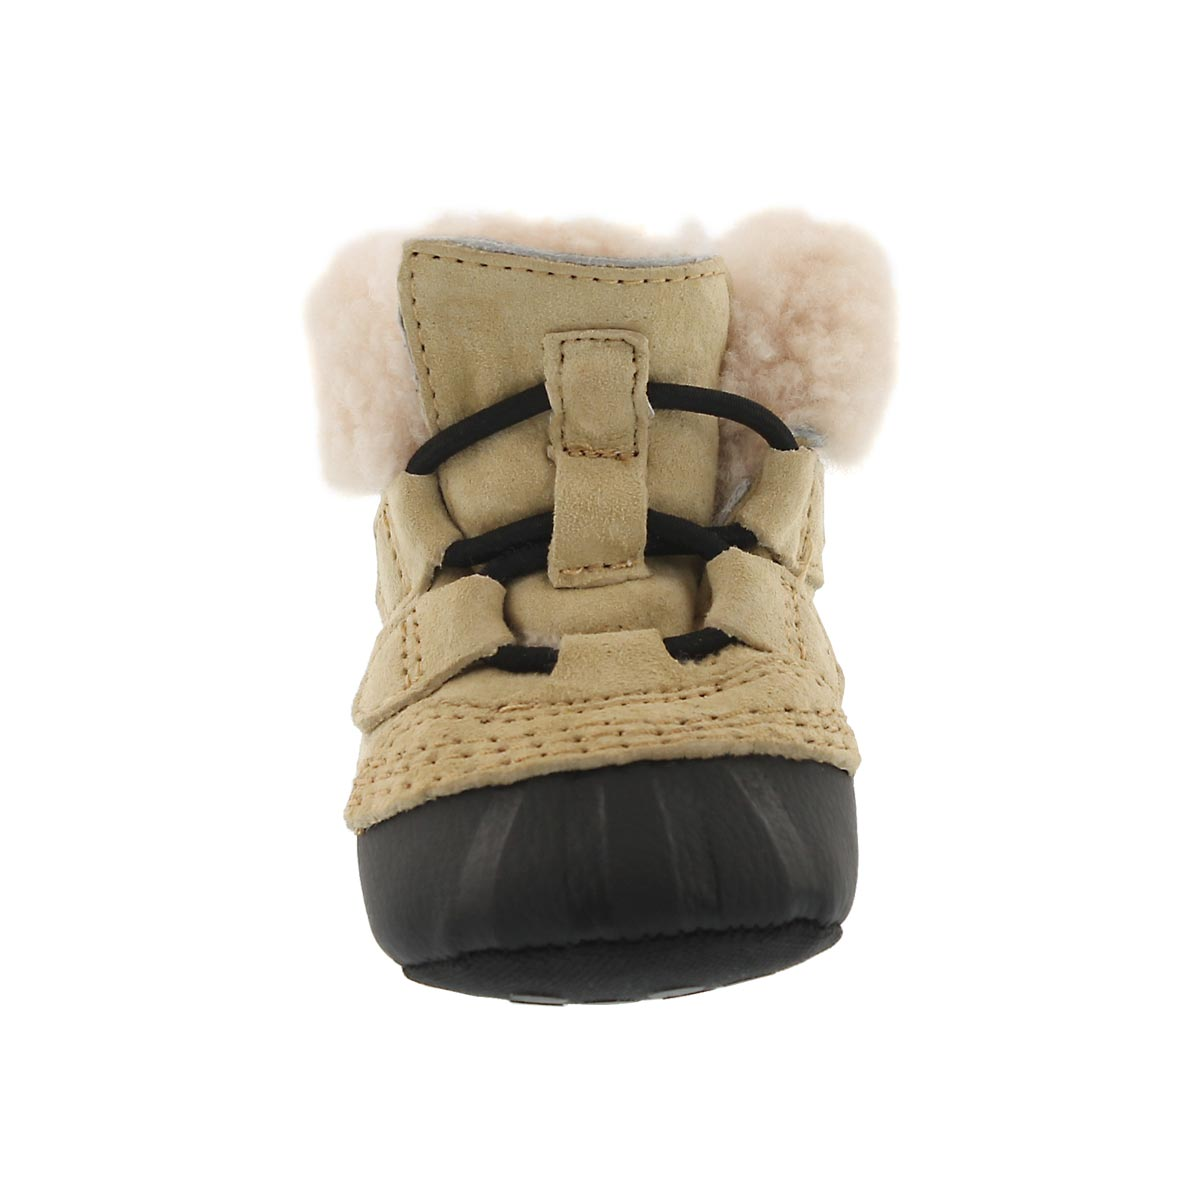 Inf Caribootie curry/black boot slipper